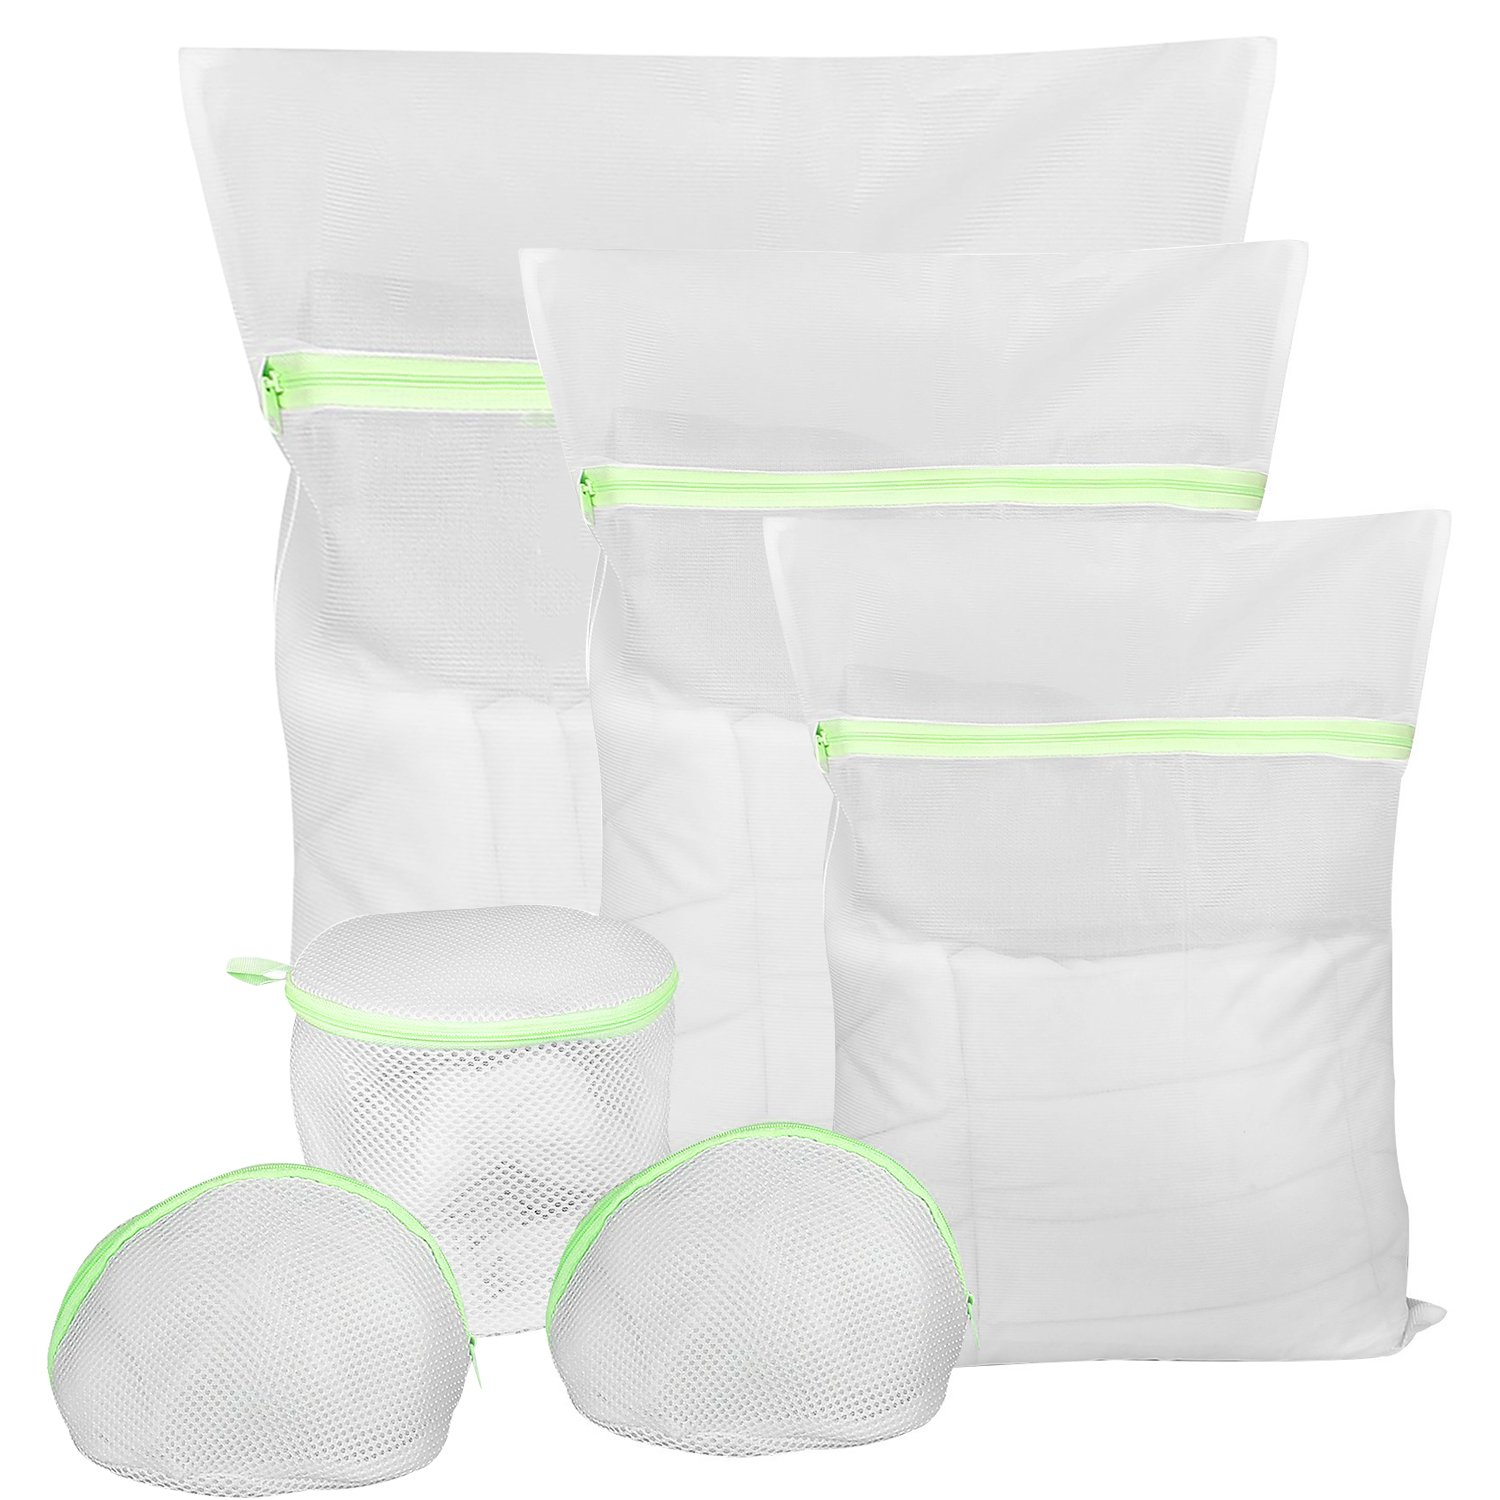 6 Pack Mesh Laundry Bags - 1 Extra Large, 1 Large, 1 Medium, 2 Triangular Shape Bra-Saver Bag, 1 Domed Wash Bag, Comsun Delicates Mesh Bags, Laundry Bags Set for Washing Sweater Underwear Bra